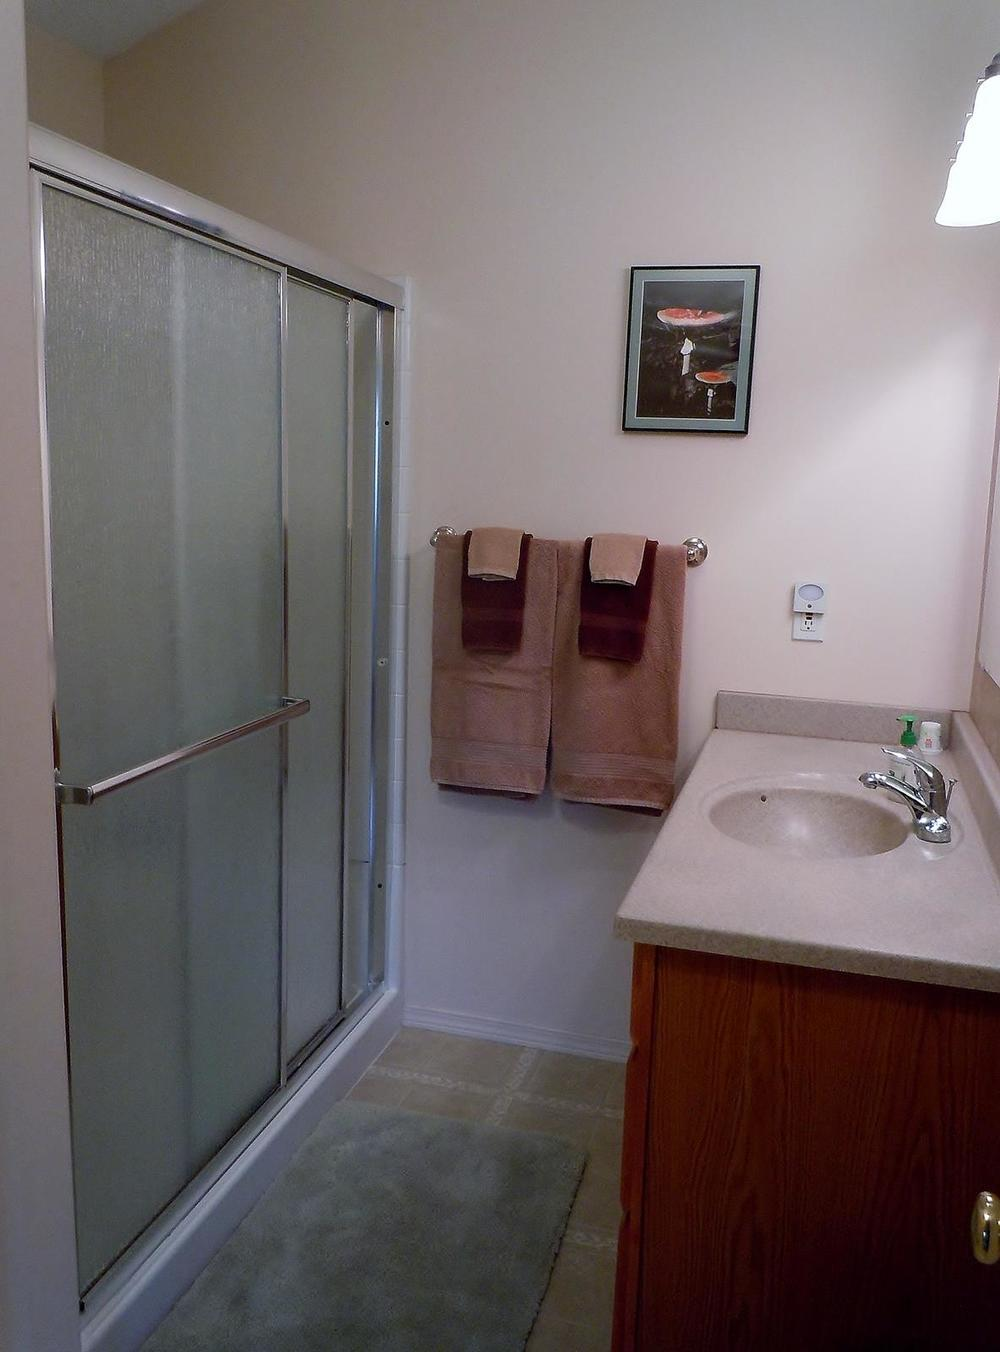 Upstairs ensuite bathroom with large shower.